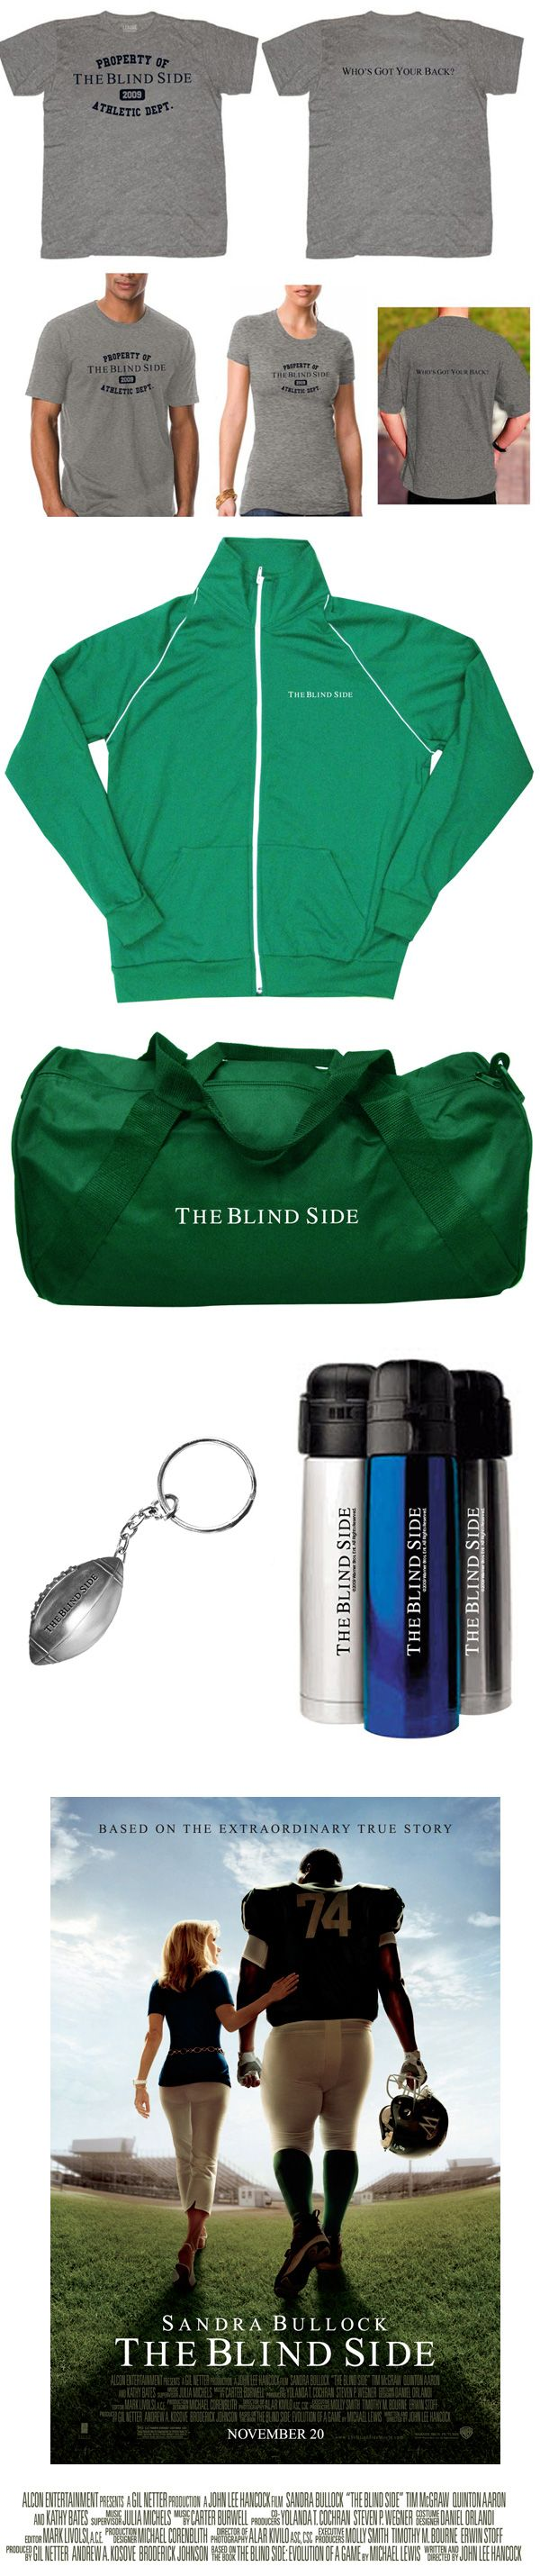 The Blind Side contest items.jpg